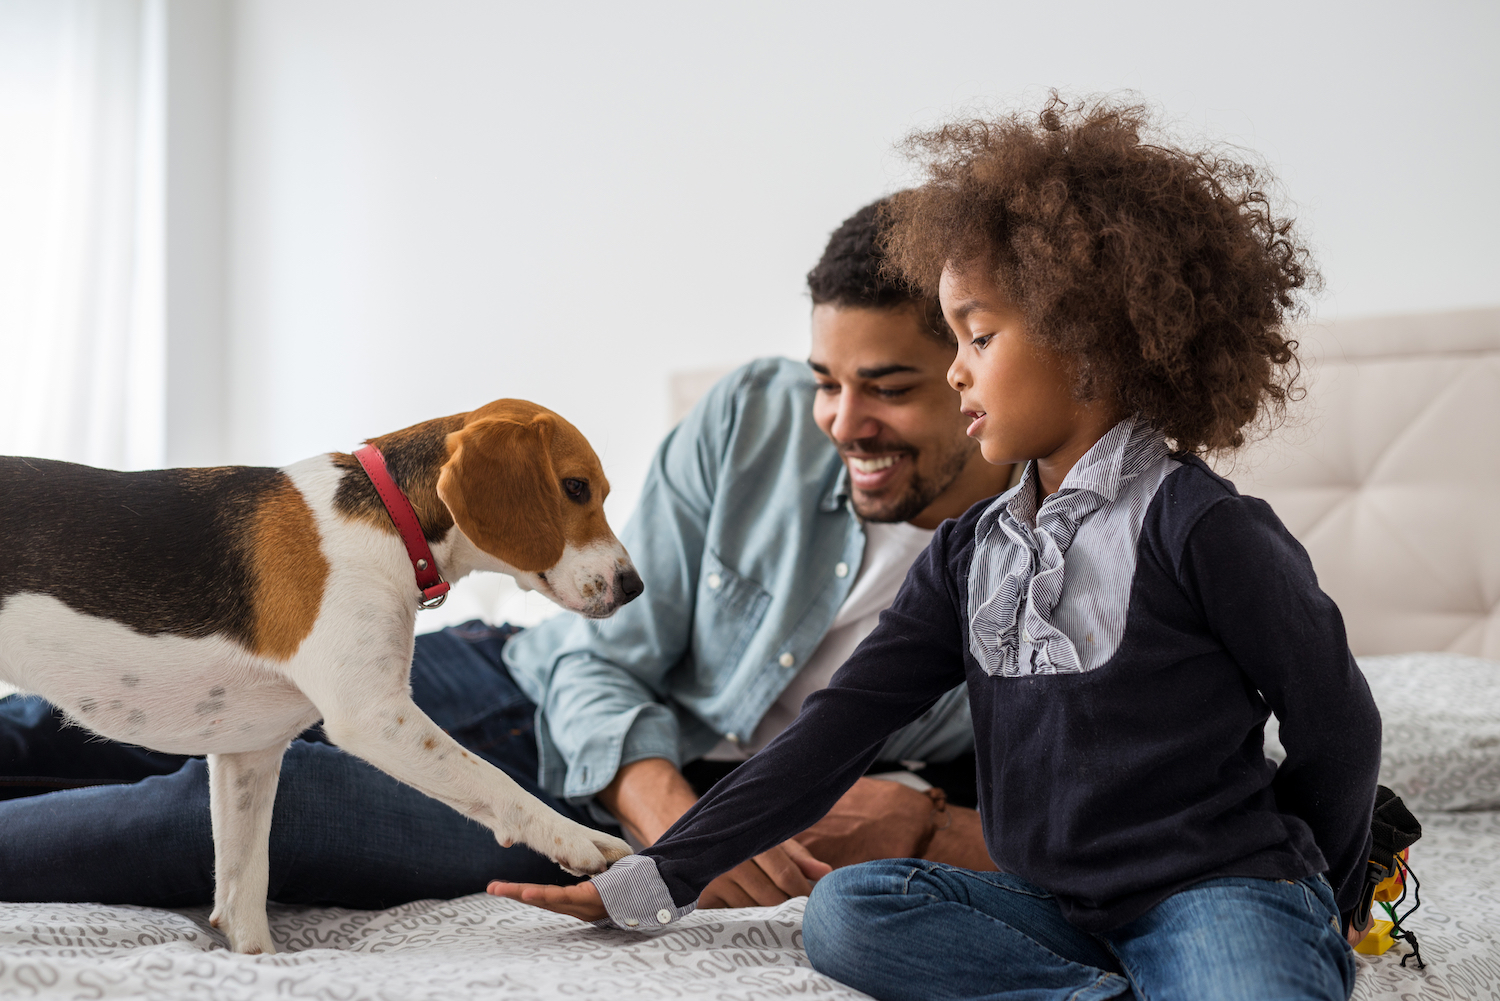 Two new studies have found that the presence of a dog in a child's home may help protect them against eczema and asthma.